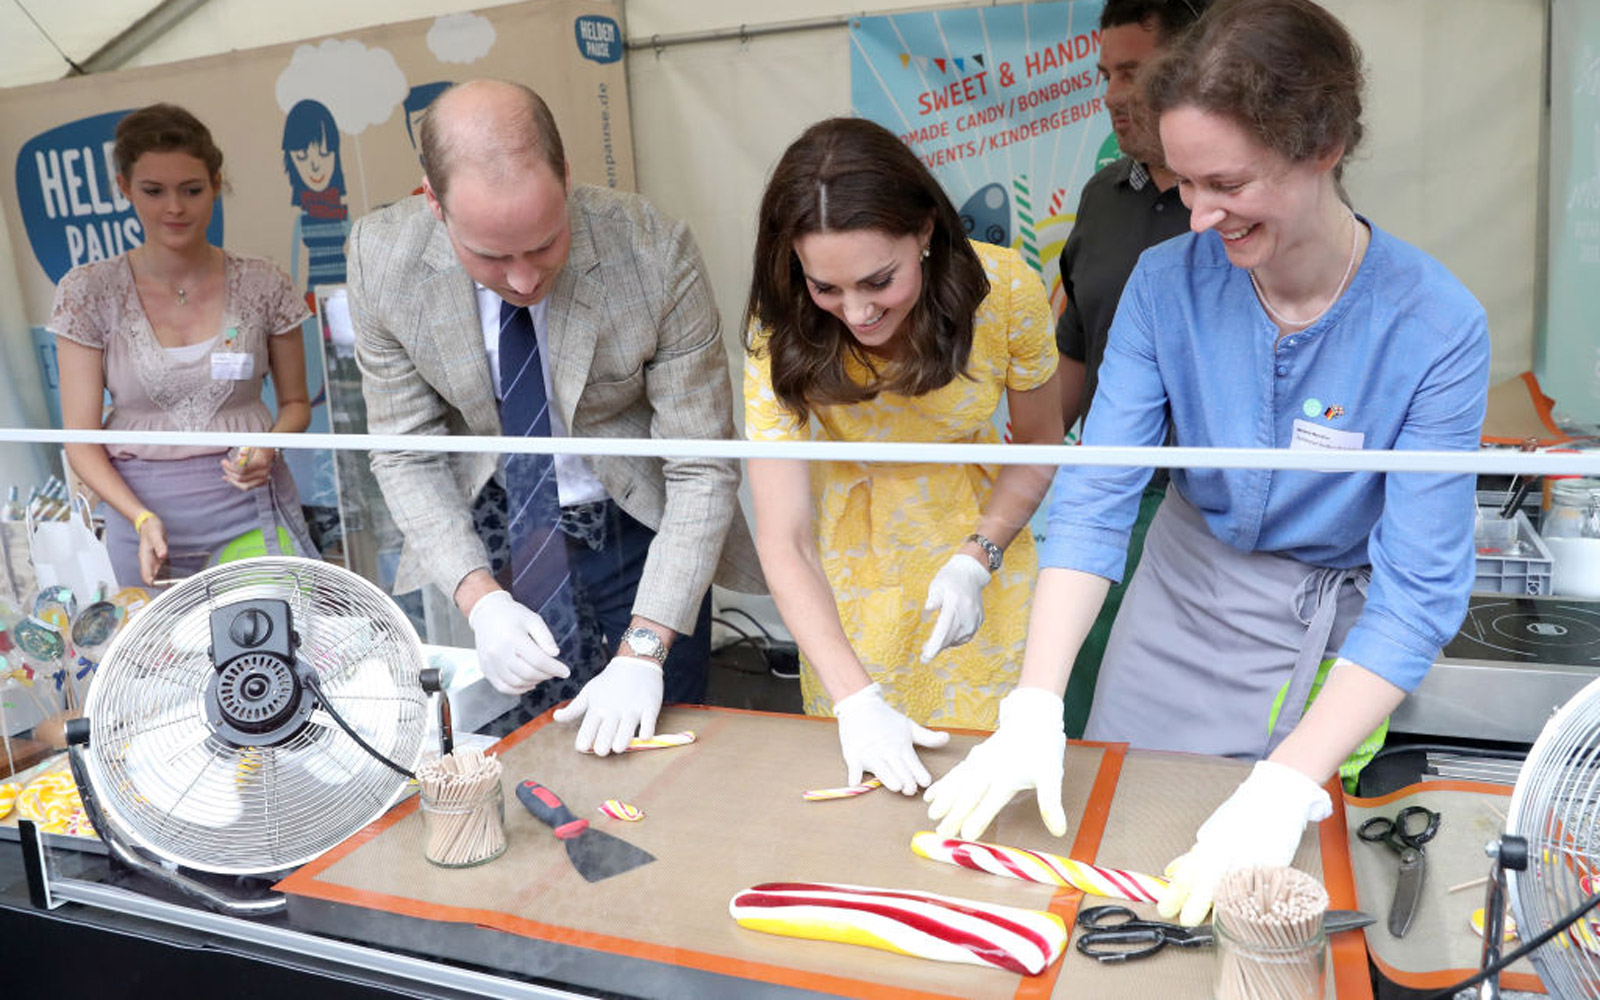 HEIDELBERG, GERMANY - JULY 20:  Prince William, Duke of Cambridge and Catherine, Duchess of Cambridge attempt to make sweets during a tour of a traditional German market in the Central Square on day 2 of their official visit to Germany on July 20, 2017 in